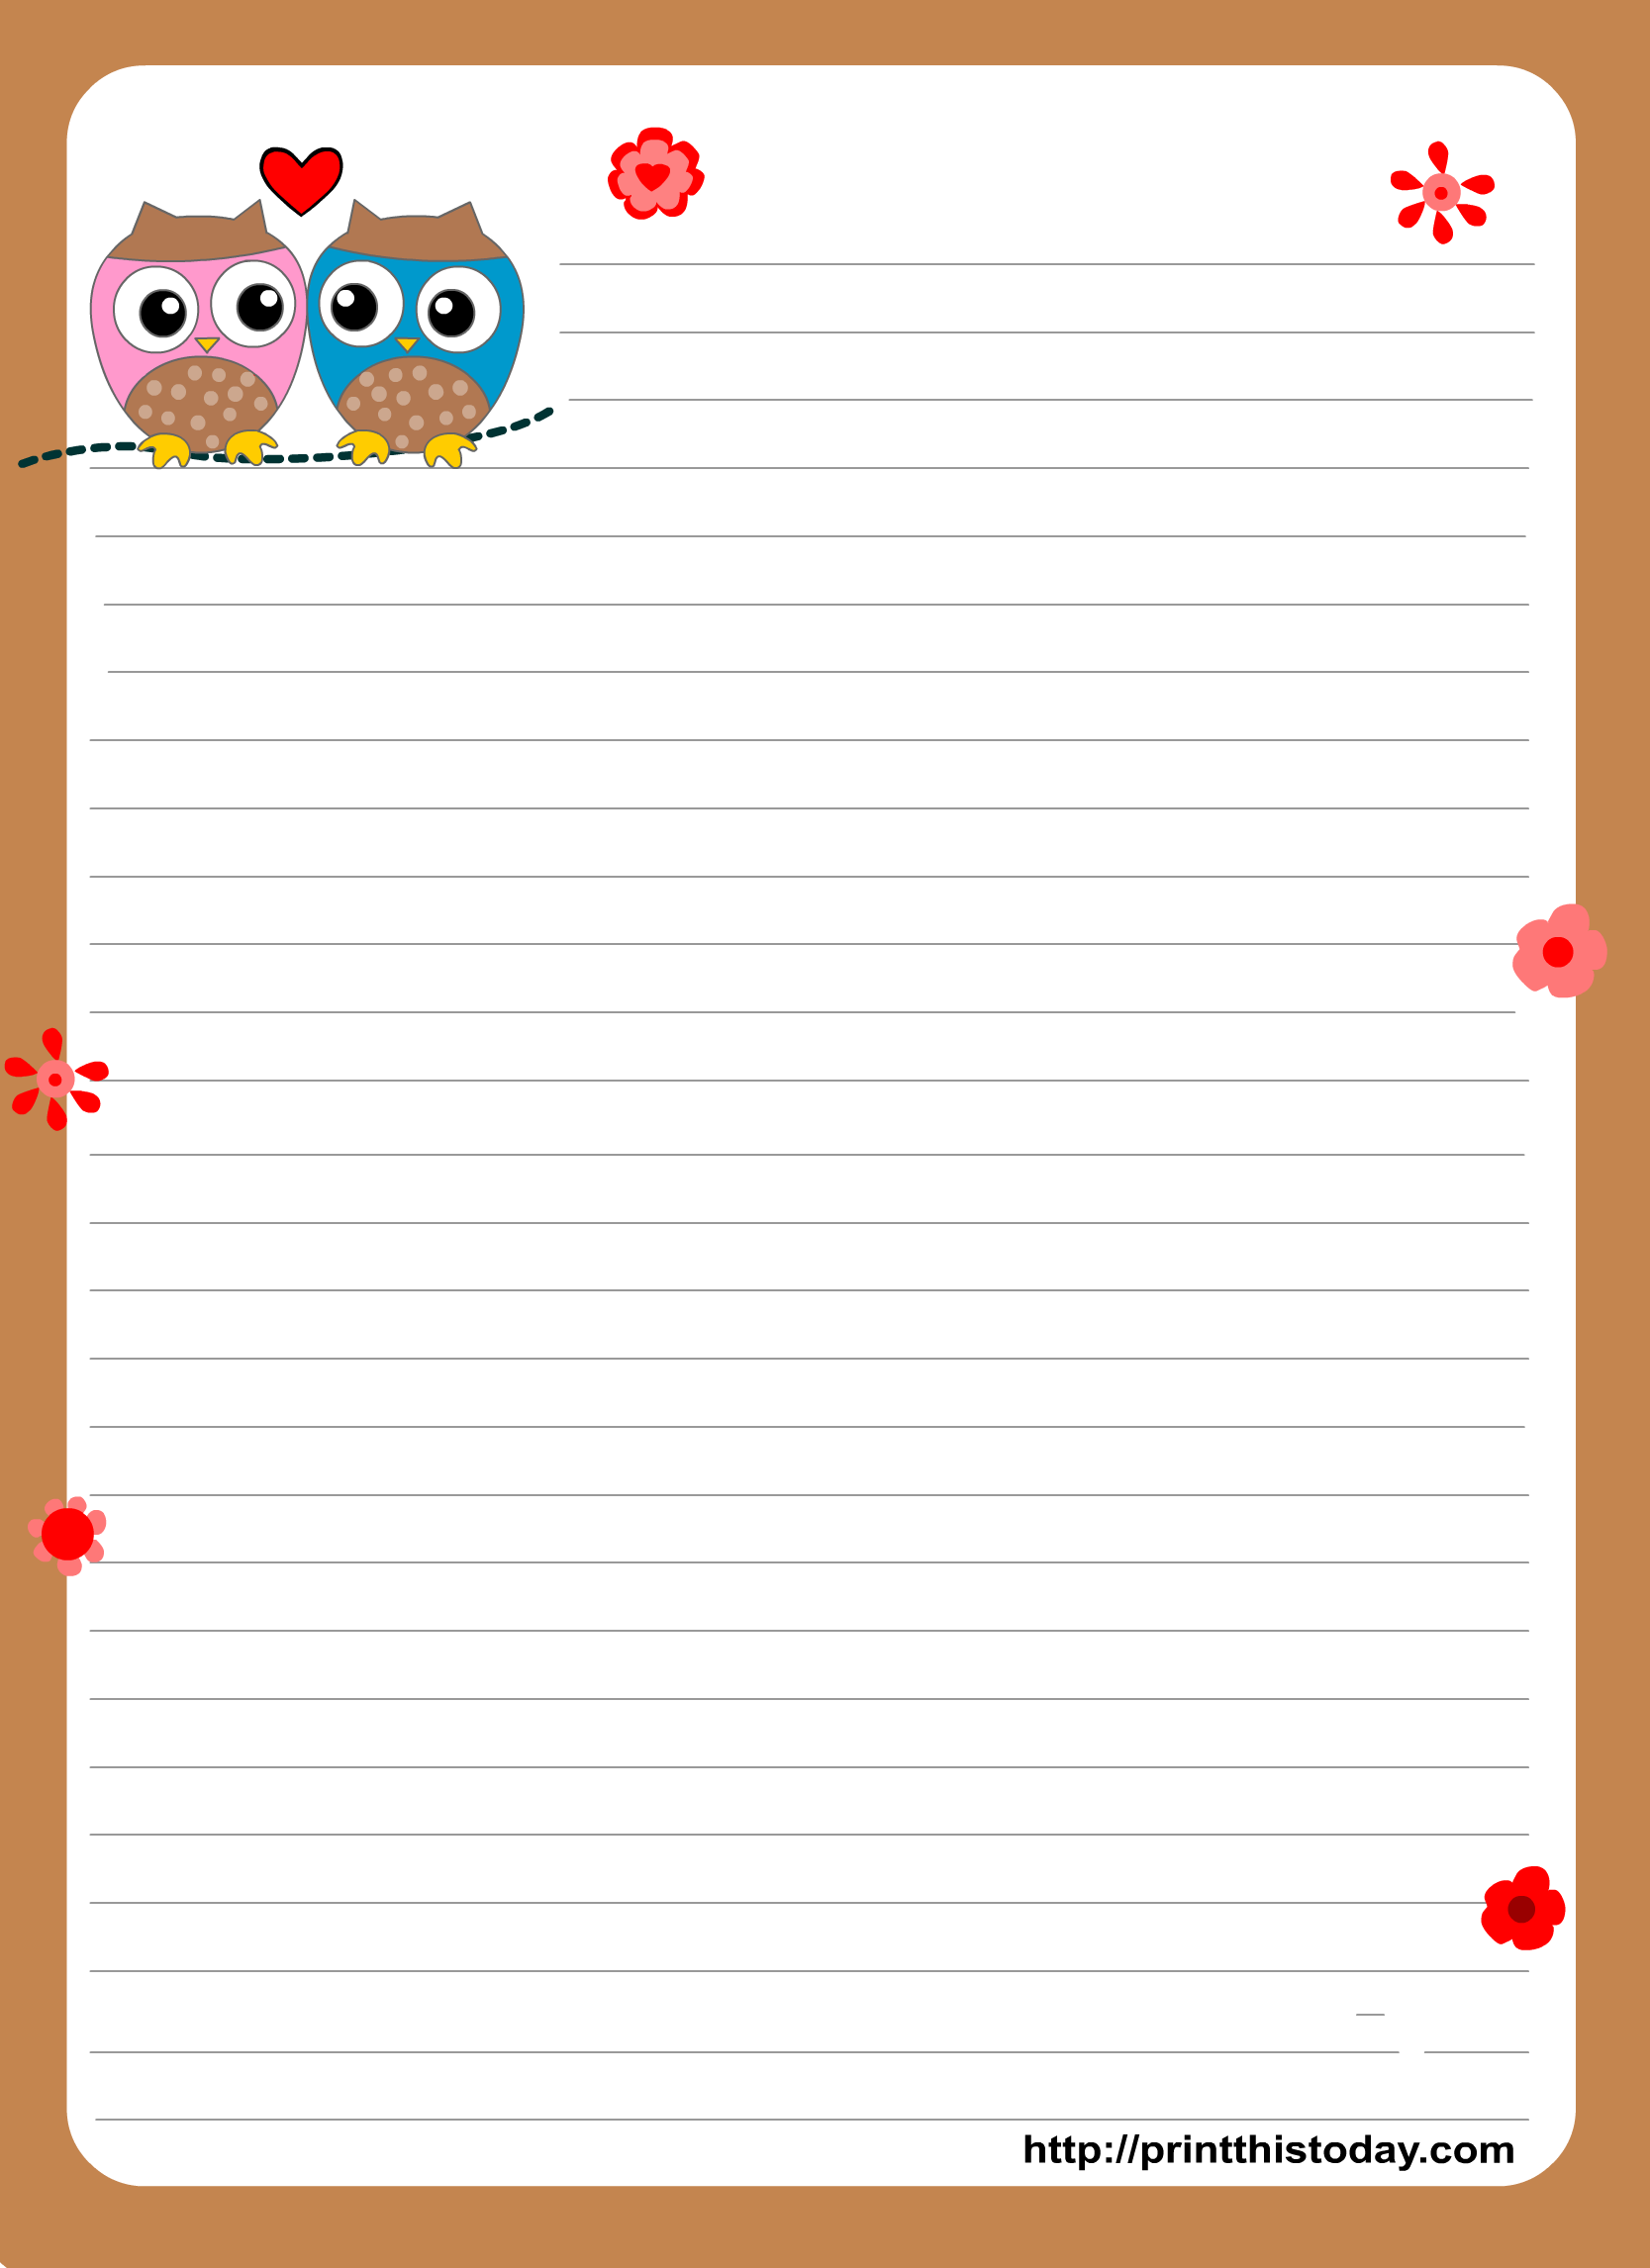 7 Images of Cute Printable Stationary Paper